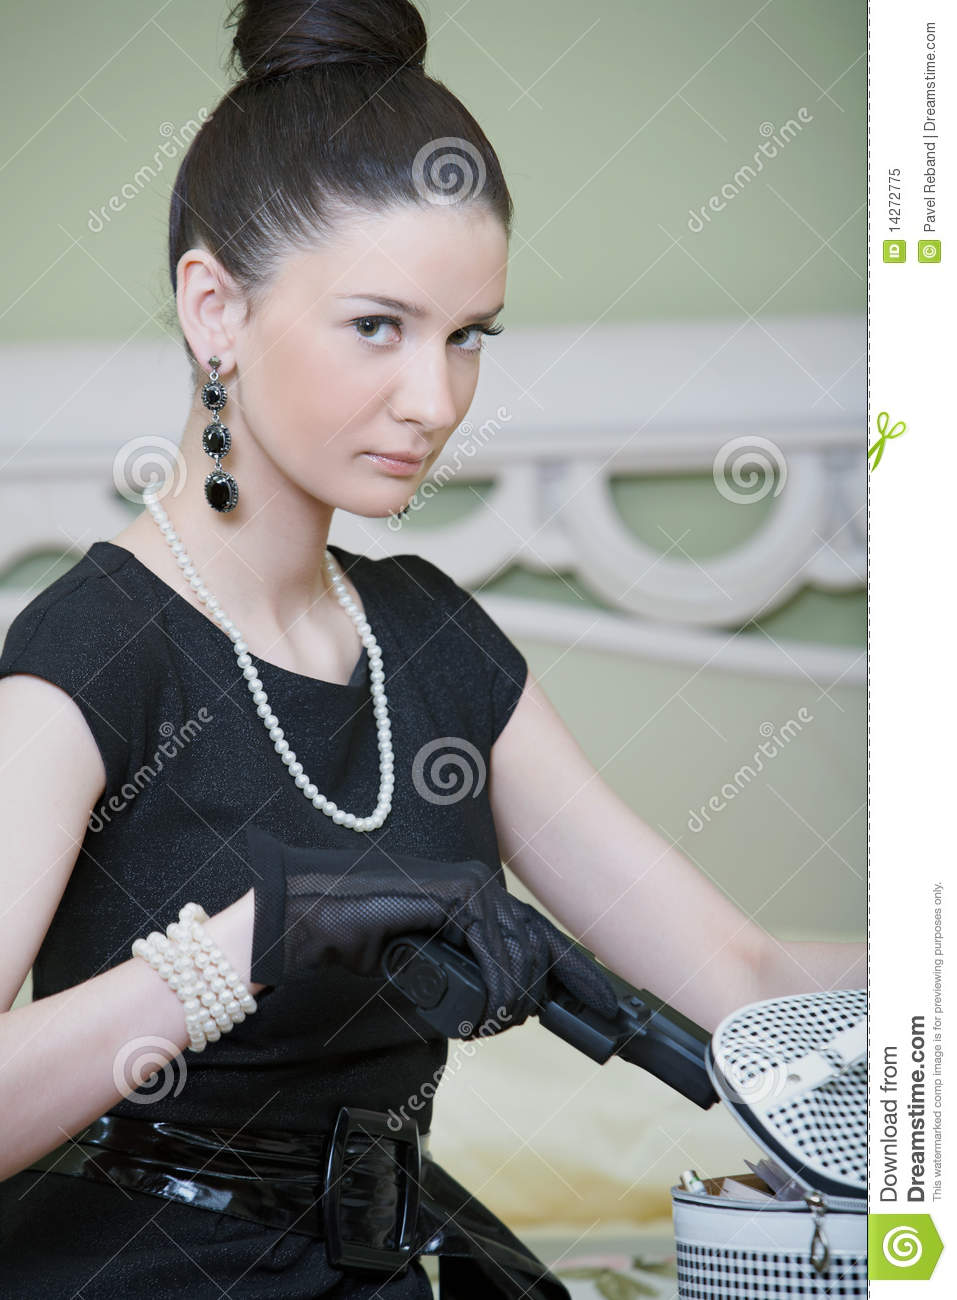 Retro woman with a gun in a hotel woman